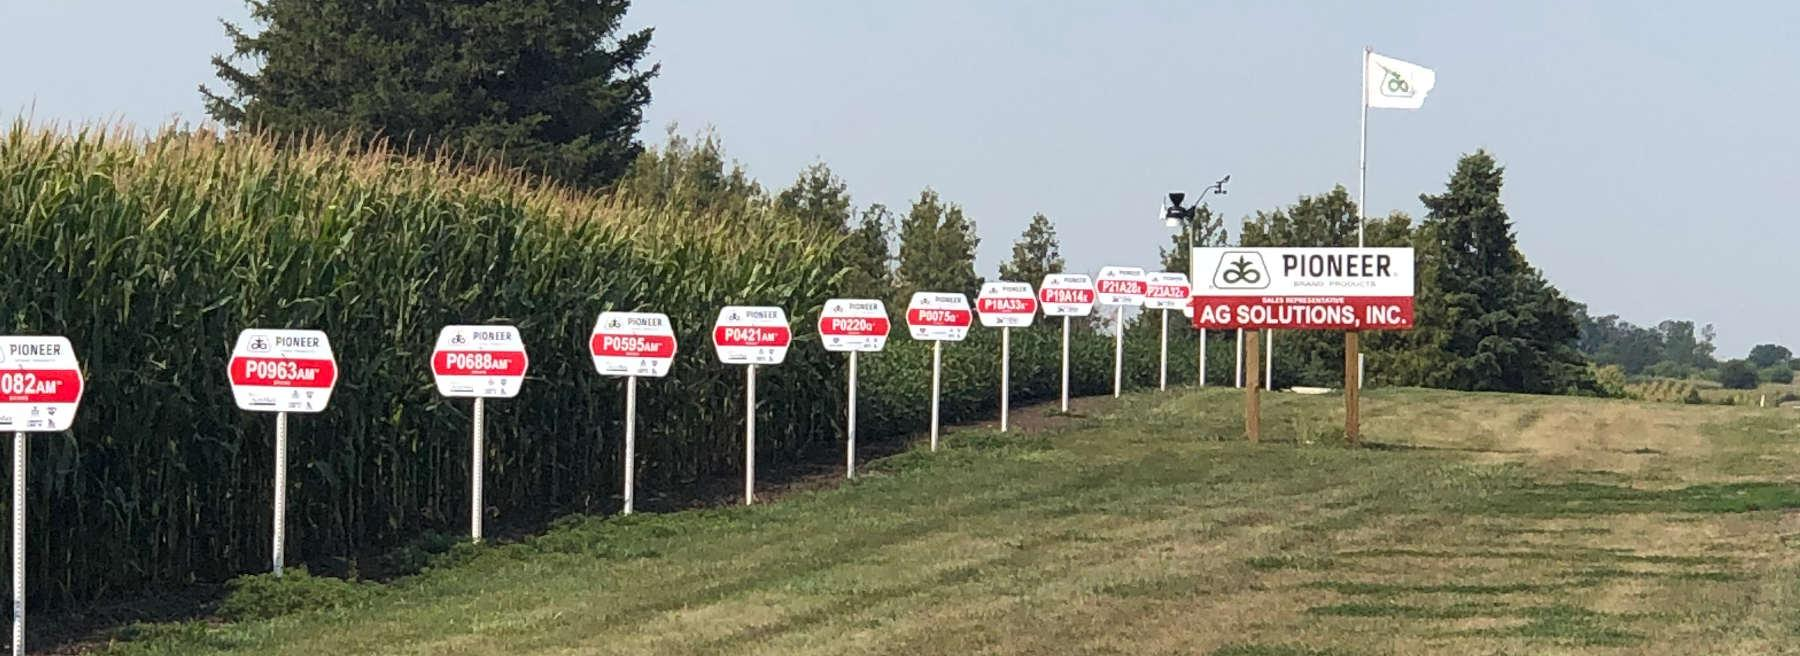 Ag Solutions Field Sign